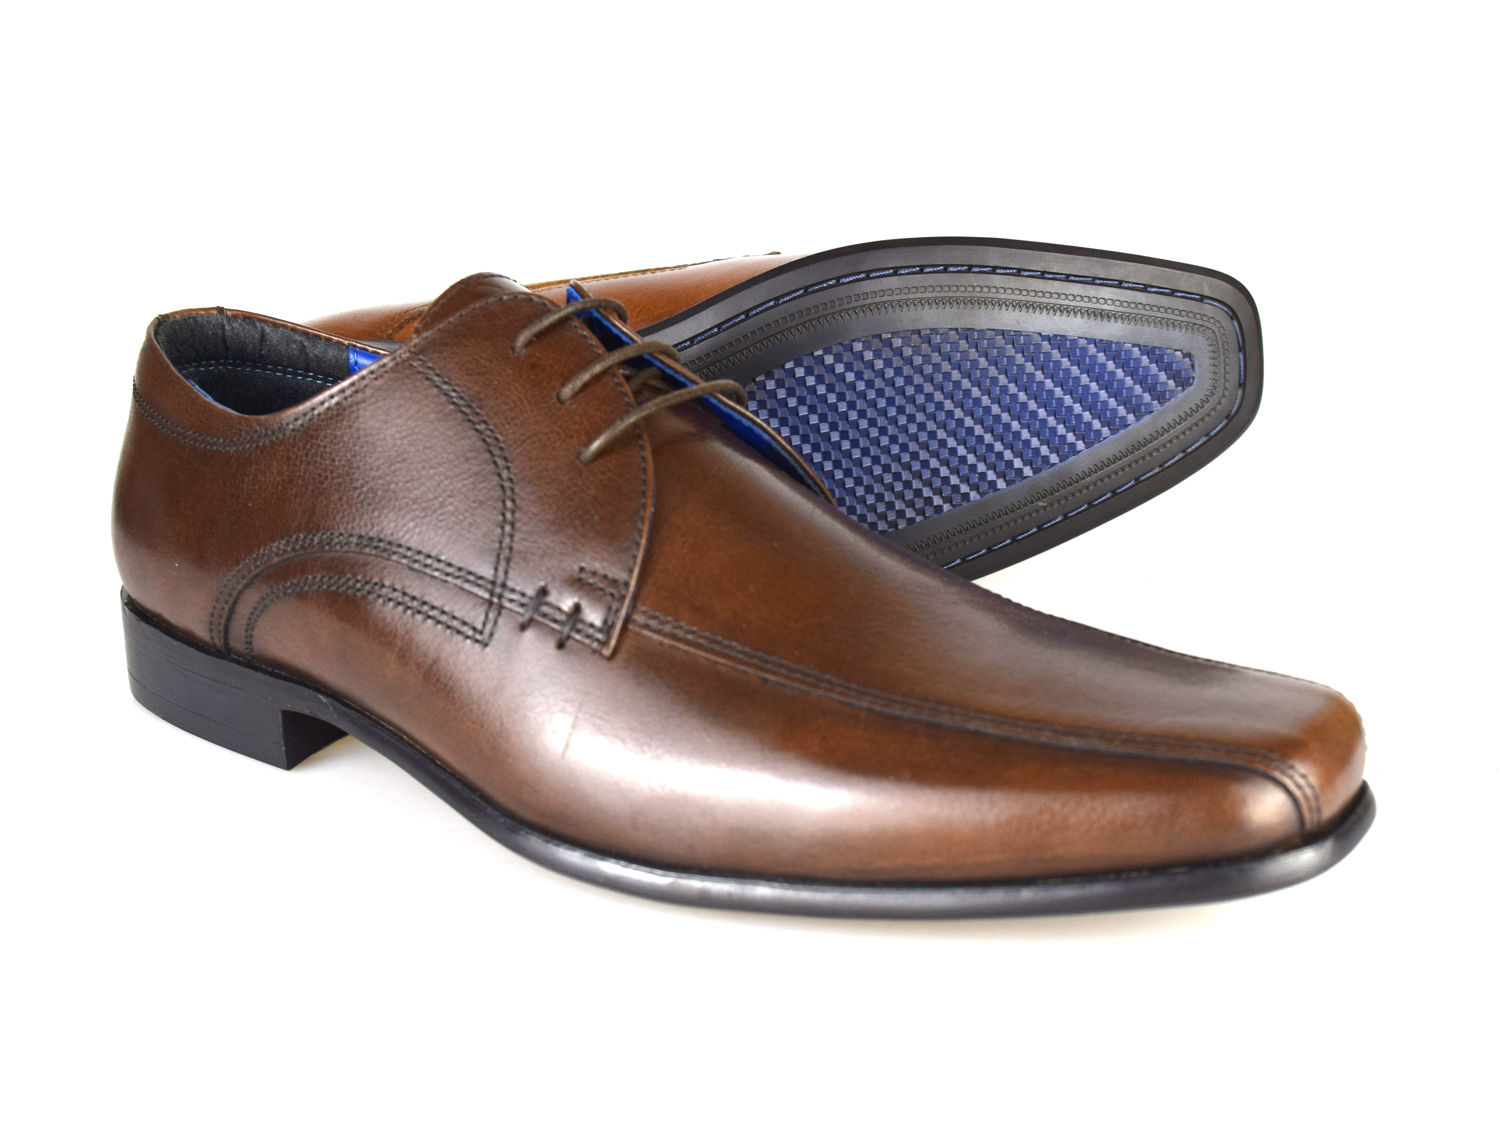 Red Tape Munster MARRONE MEN'S LEATHER Formale Lace-Up Scarpe RRP £ 45 GRATIS UK P & P!